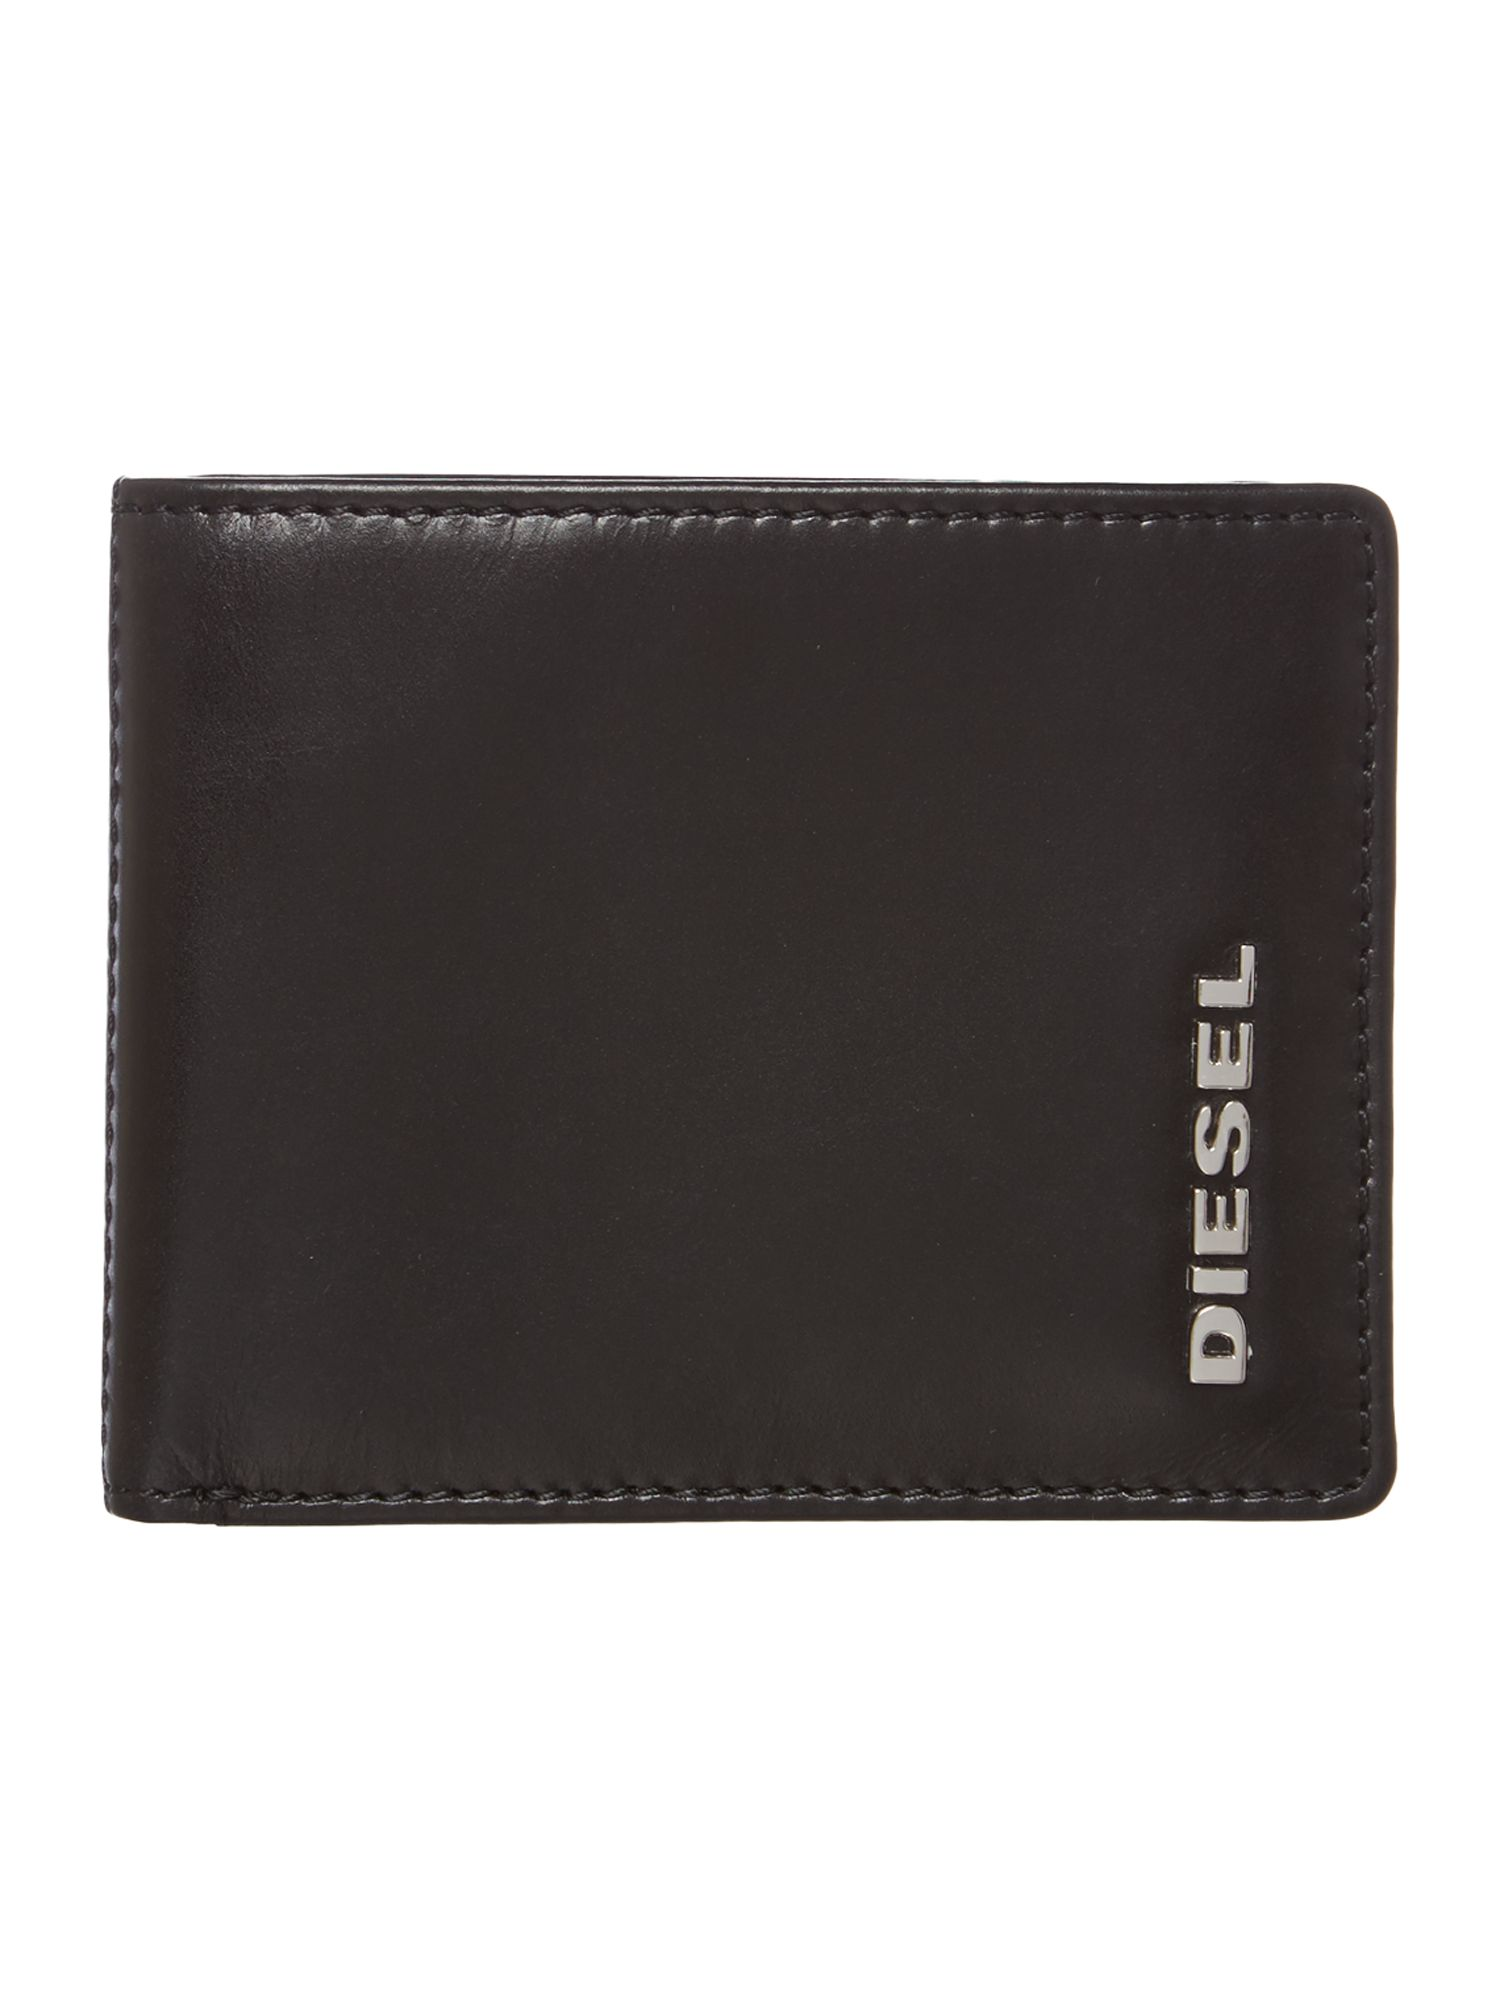 Green interior billfold wallet